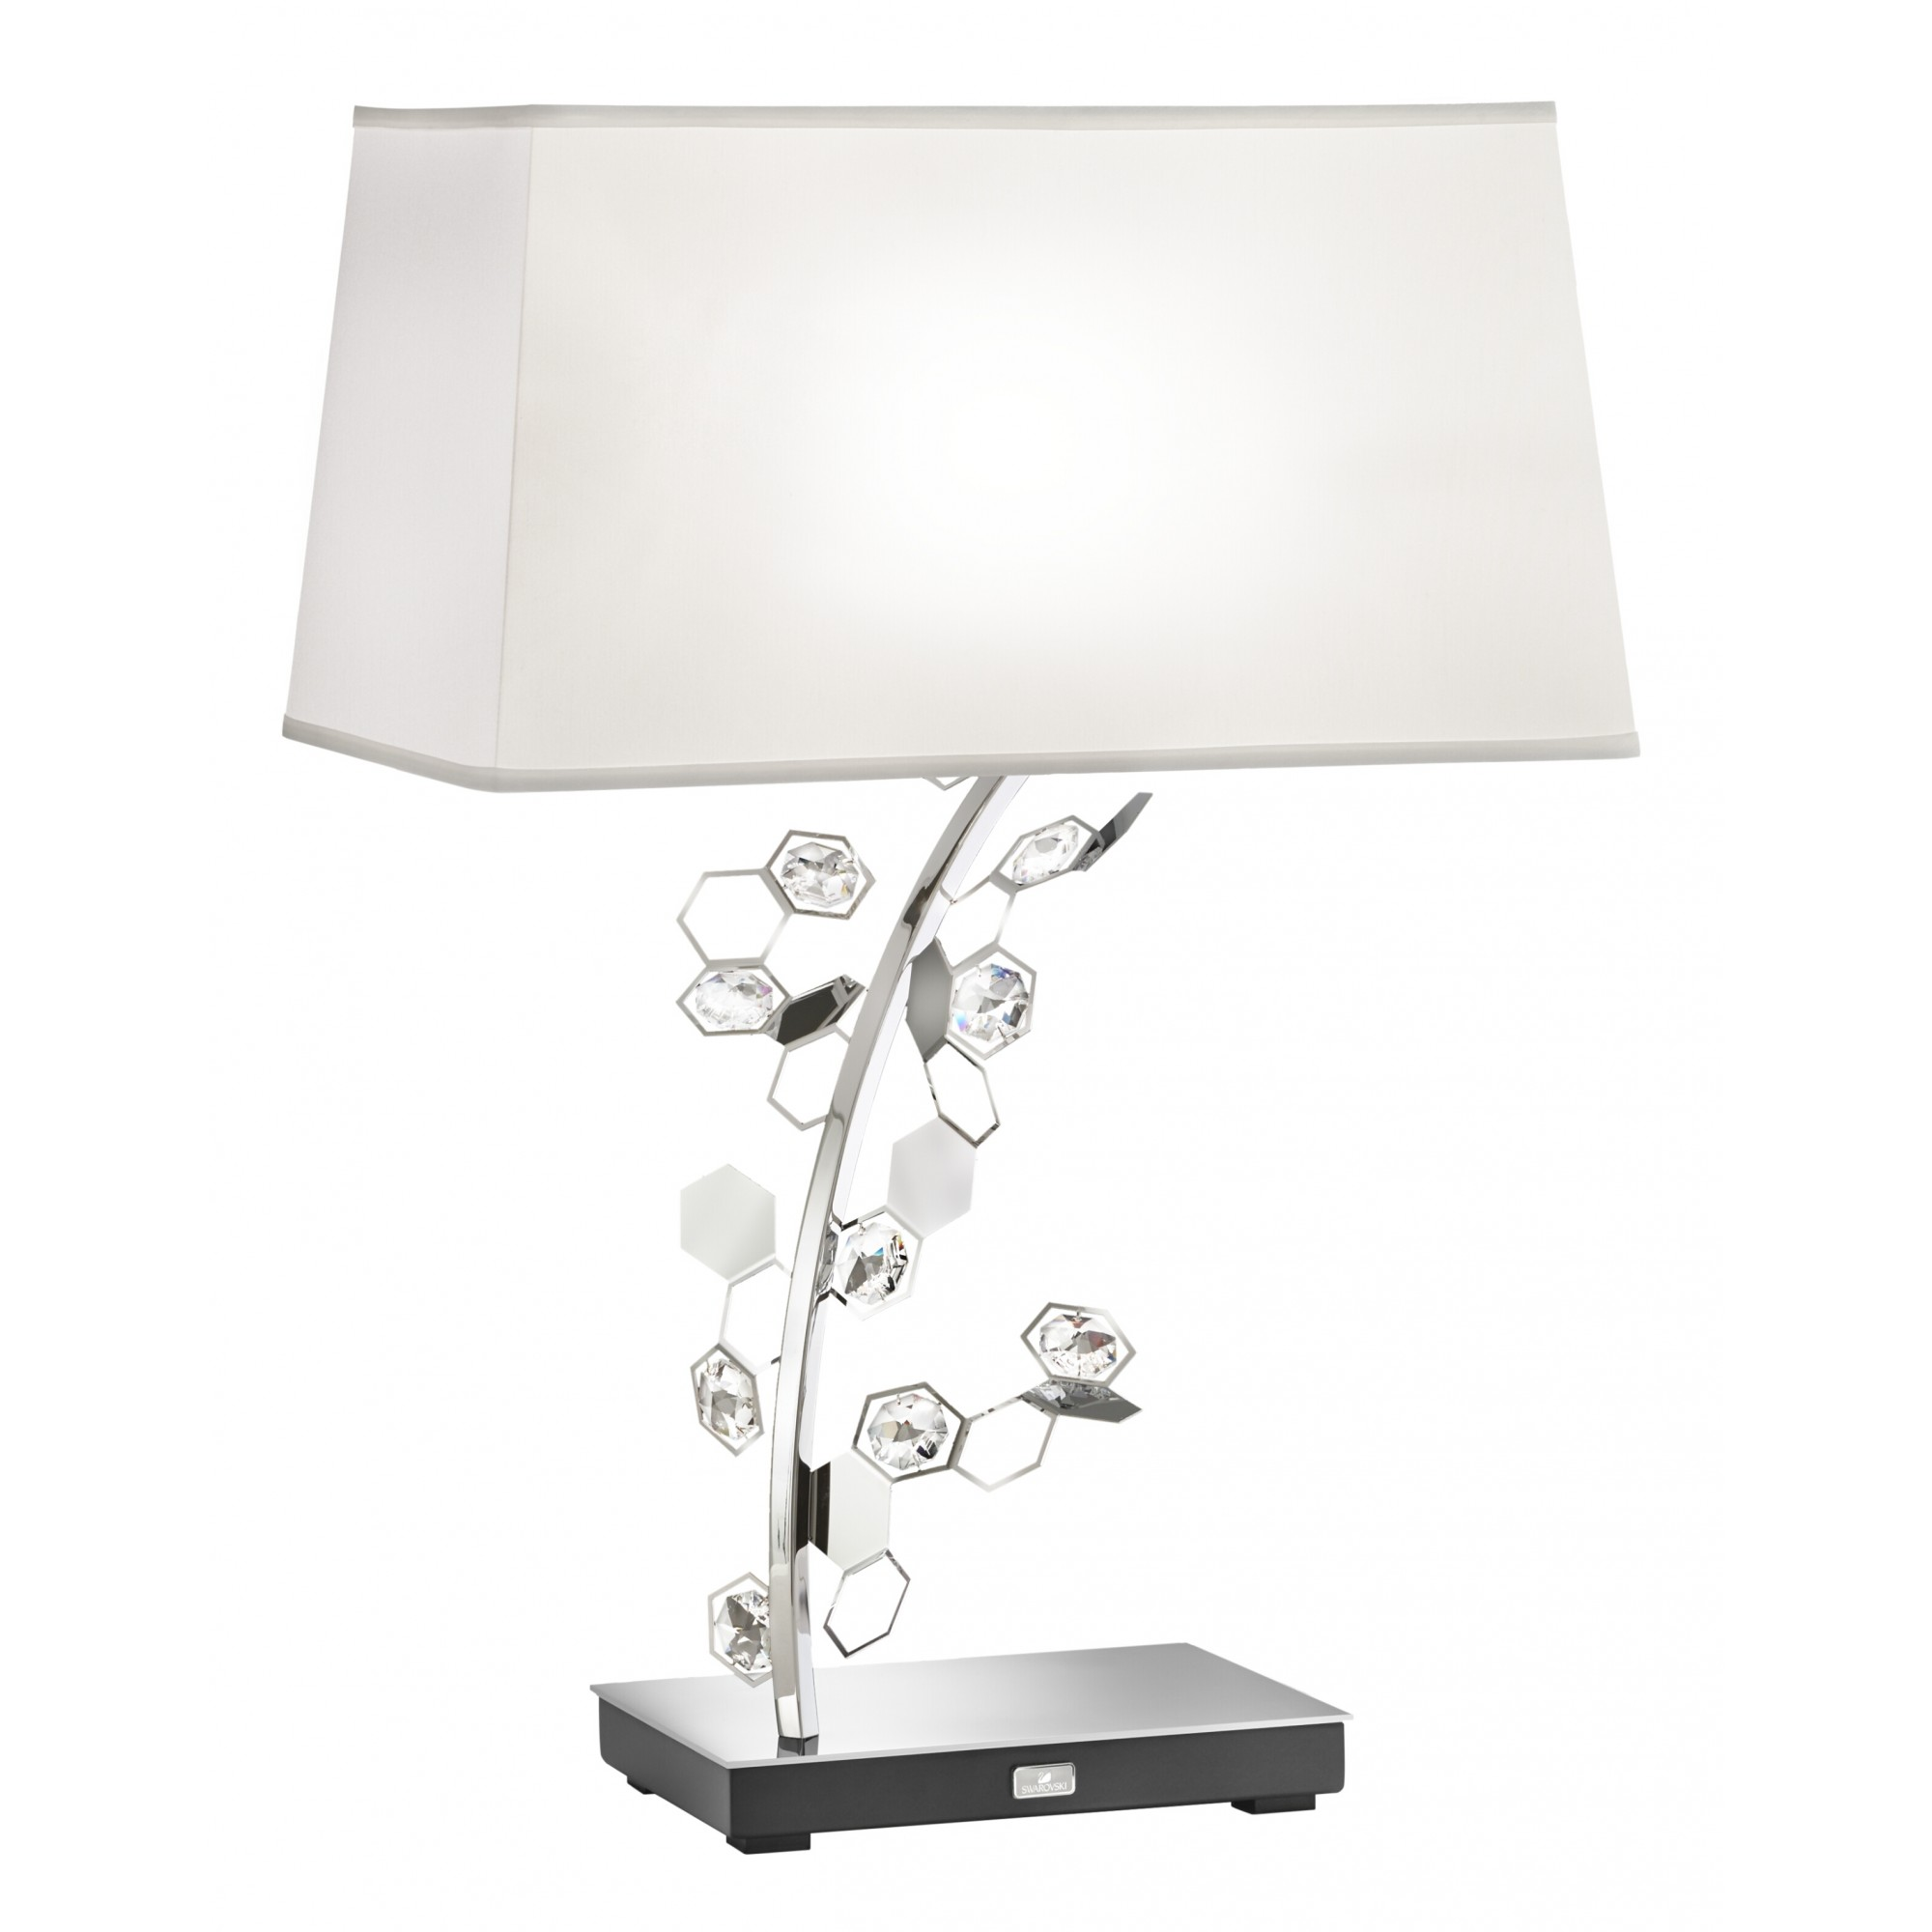 CRYSTALON TABLE LAMP - SW.SCY570E-SS1SAB -  CRYSTALON TABLE LAMP